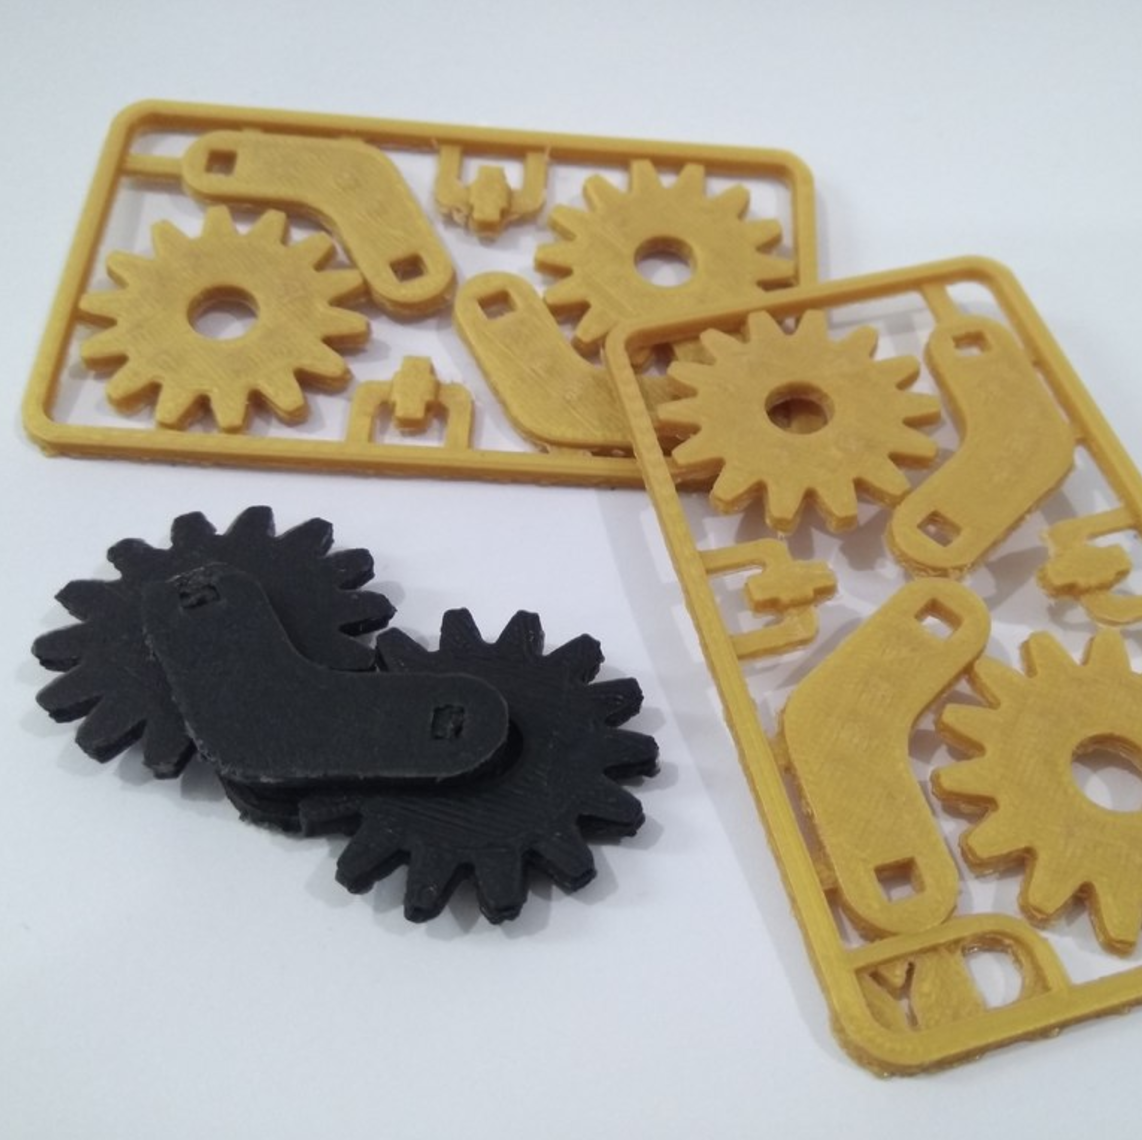 Capture d'écran 2016-12-14 à 16.43.29.png Download free STL file Fidget Kit Business Card! • 3D printing model, Yuval_Dascalu